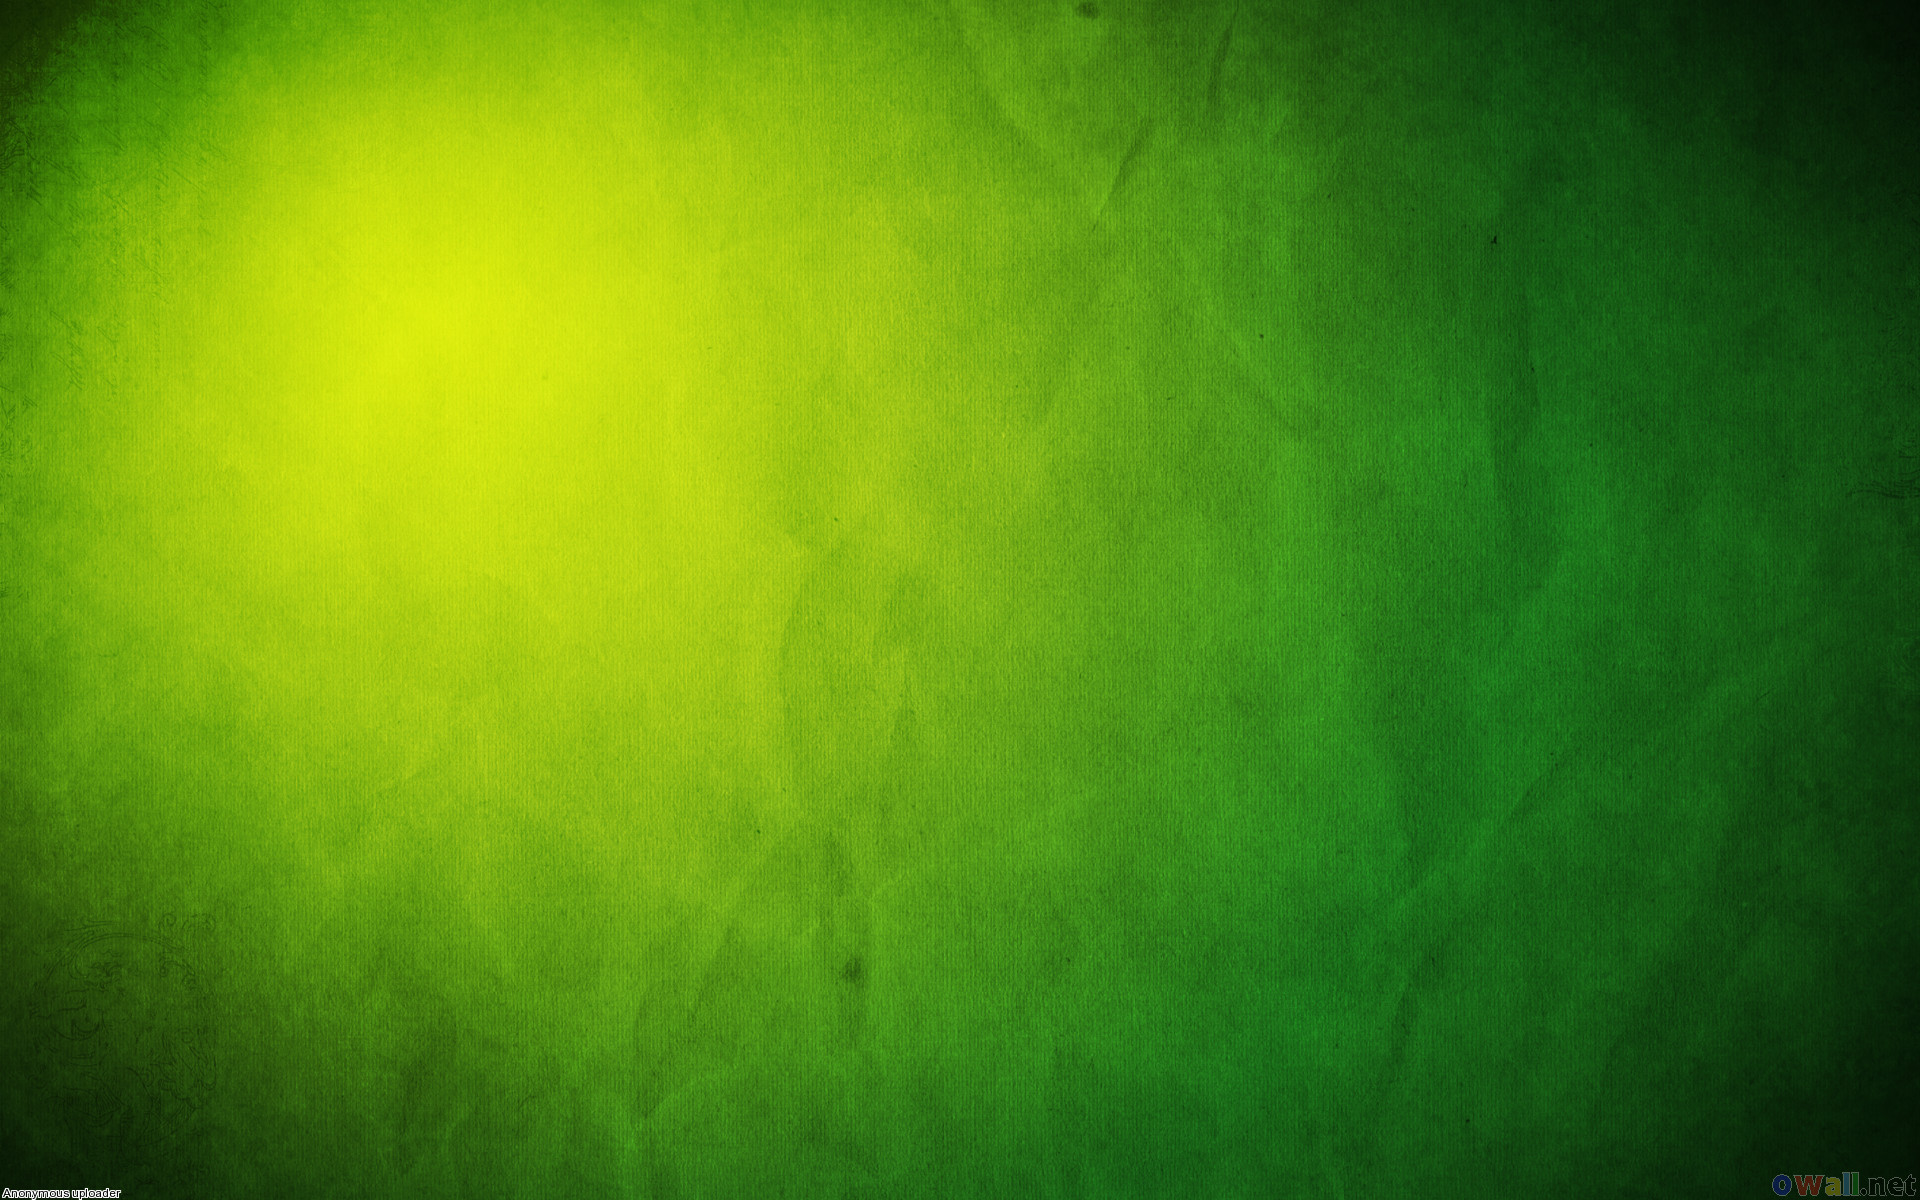 1920x1200 green background images